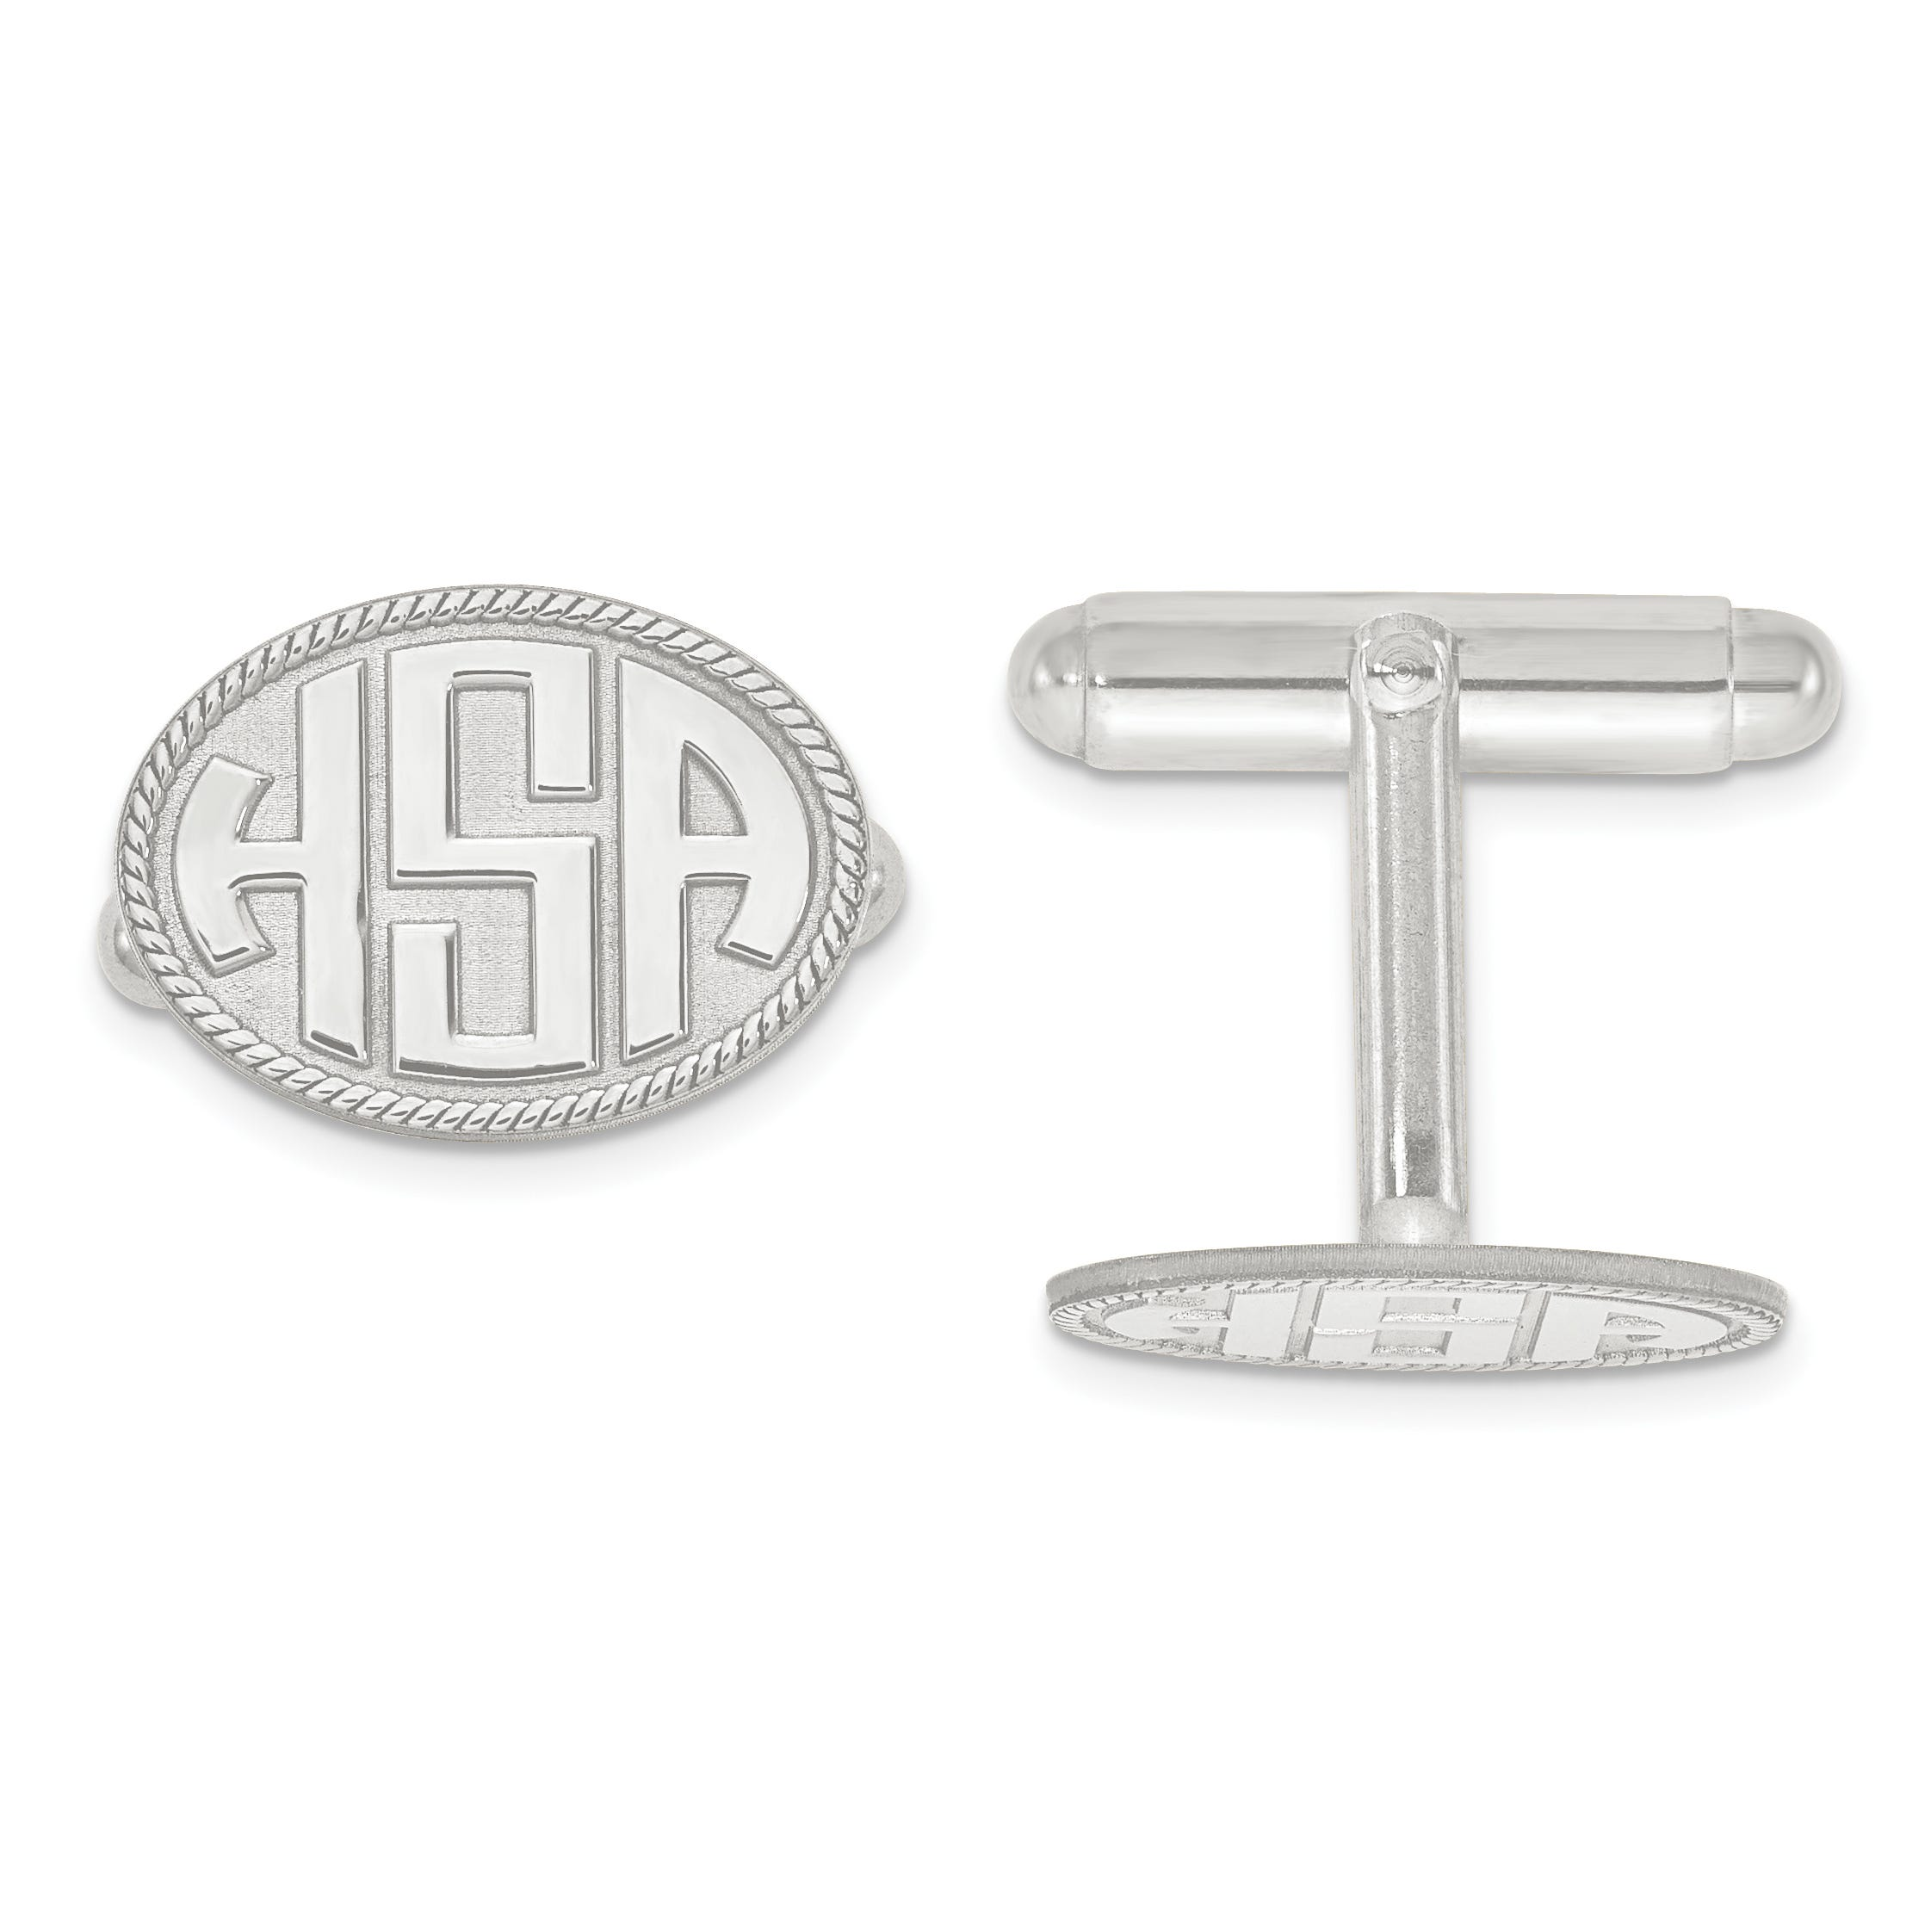 Raised Letters Oval Border Monogram Cuff Links in Sterling Silver (up to 3 letters)